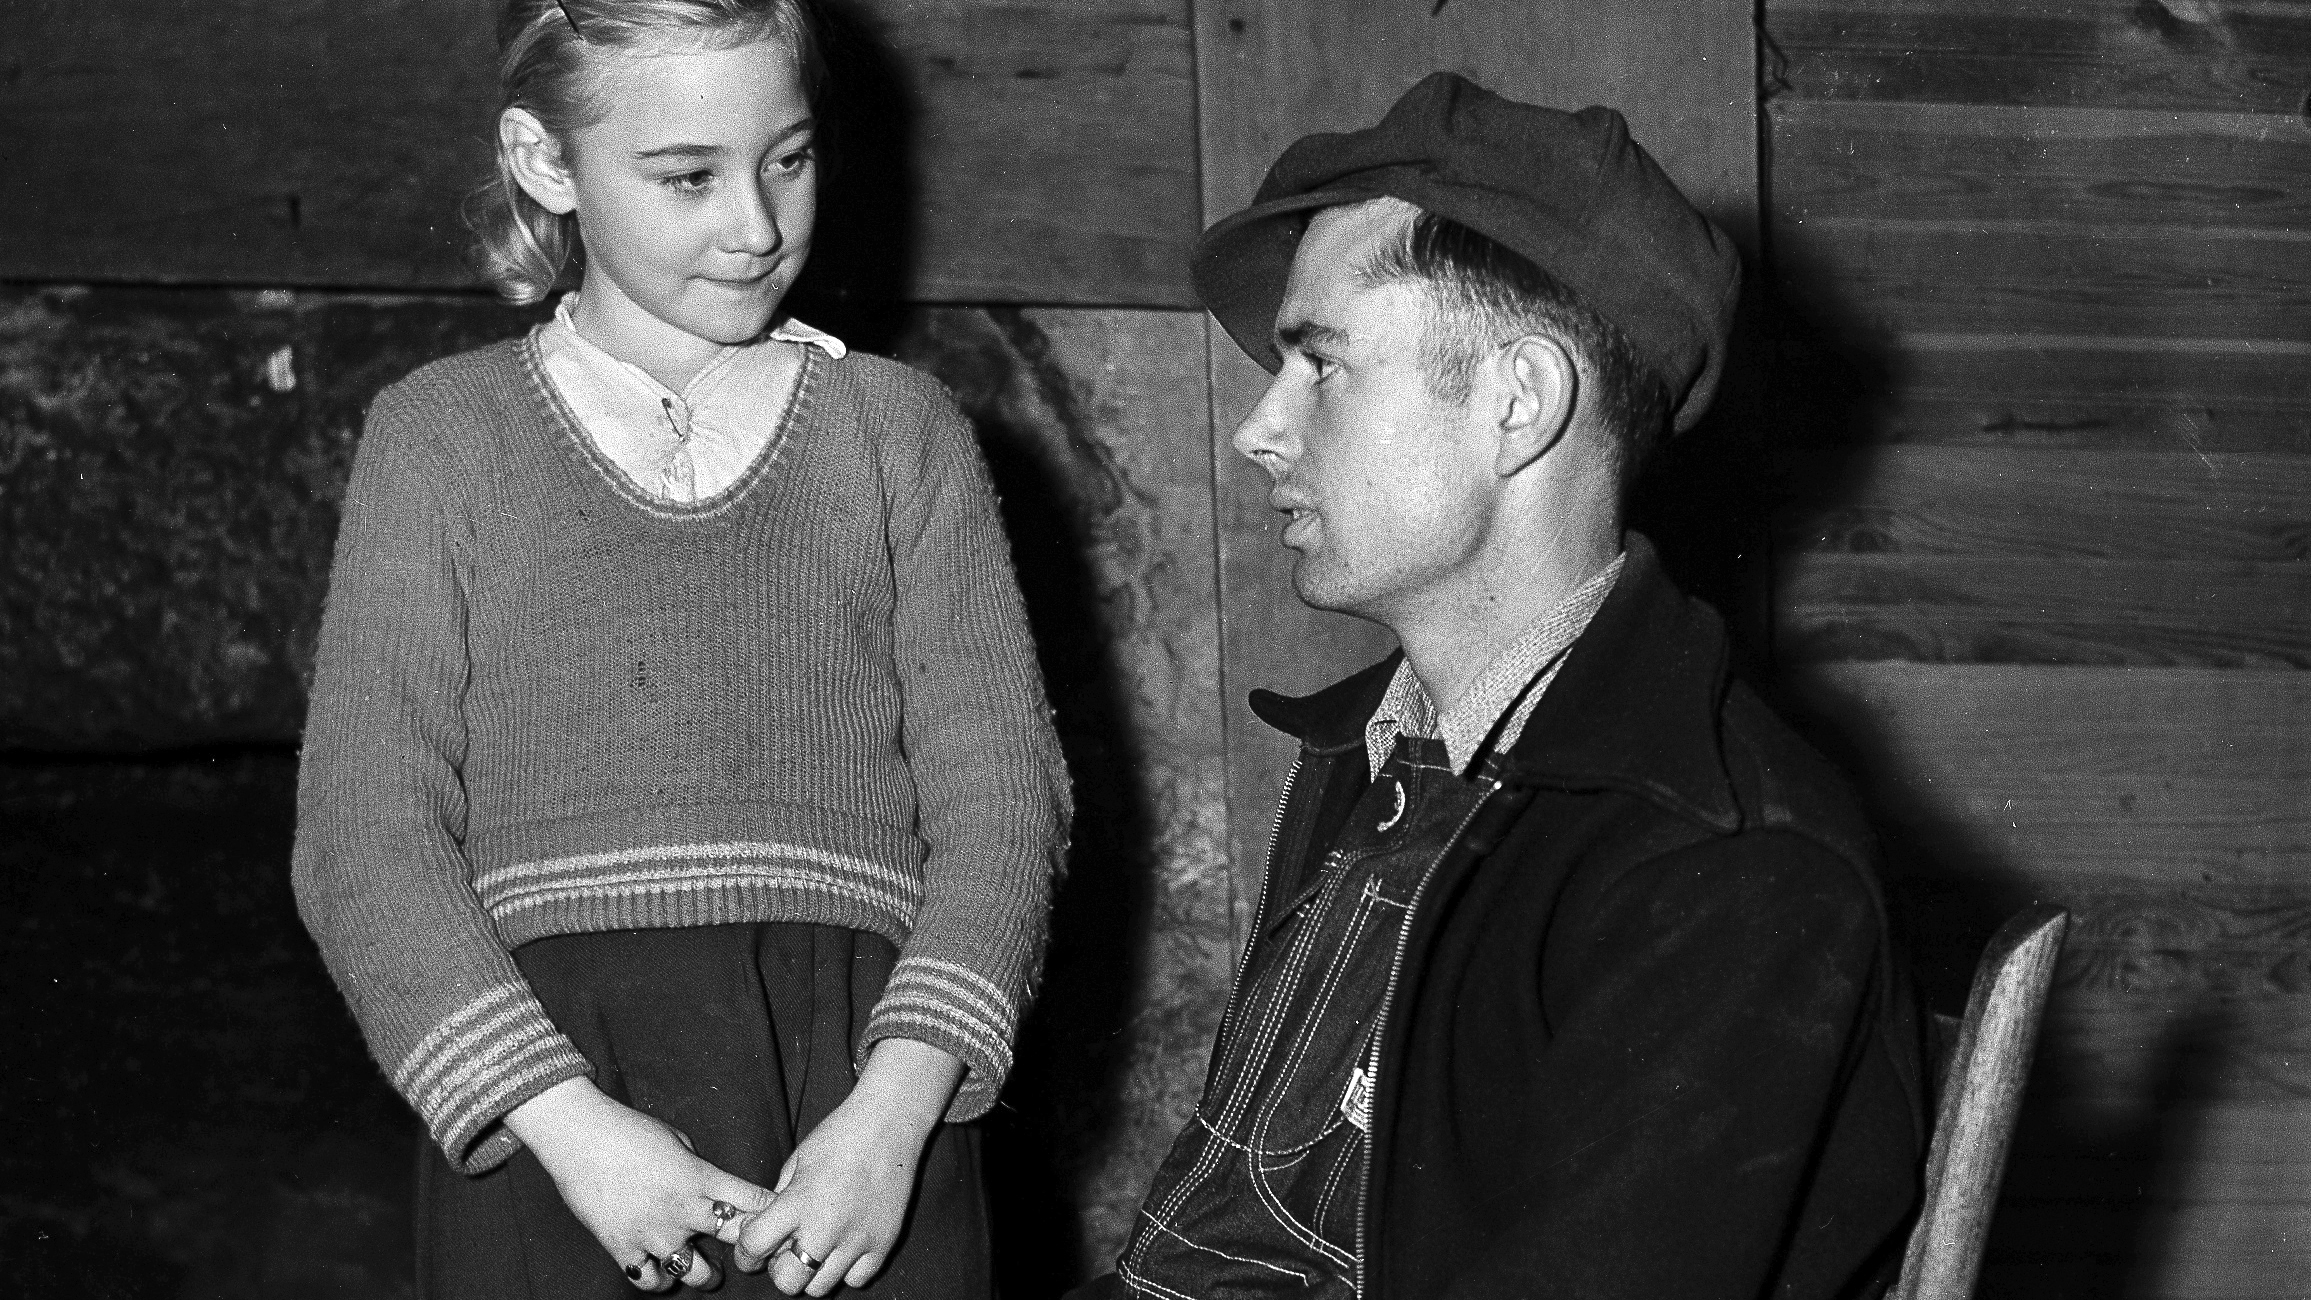 Nine-year-old Eunice Winstead Johns and her 6-foot-tall husband, Charlie Johns, 22, are shown at their home in Sneedville, Tennessee, Feb. 2, 1937.